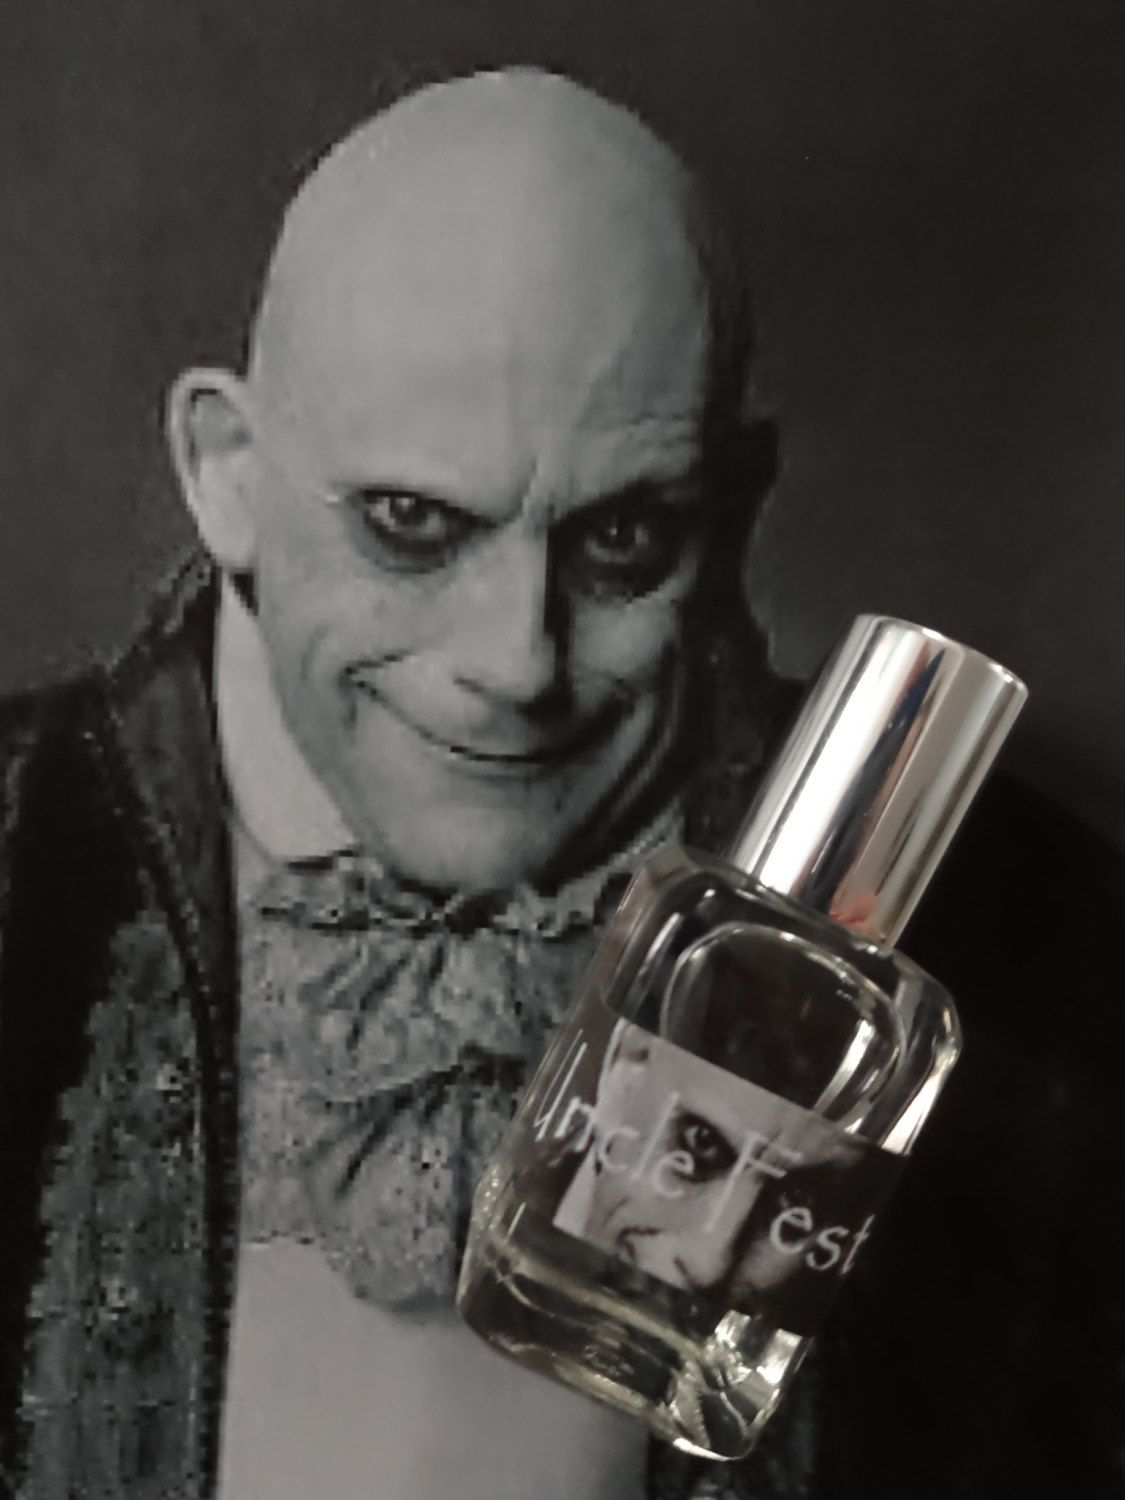 Uncle fester the addams family pinterest - Uncle Fester Cologne Oil Addams Family Tree Clearance By Anamcaragifts On Etsy